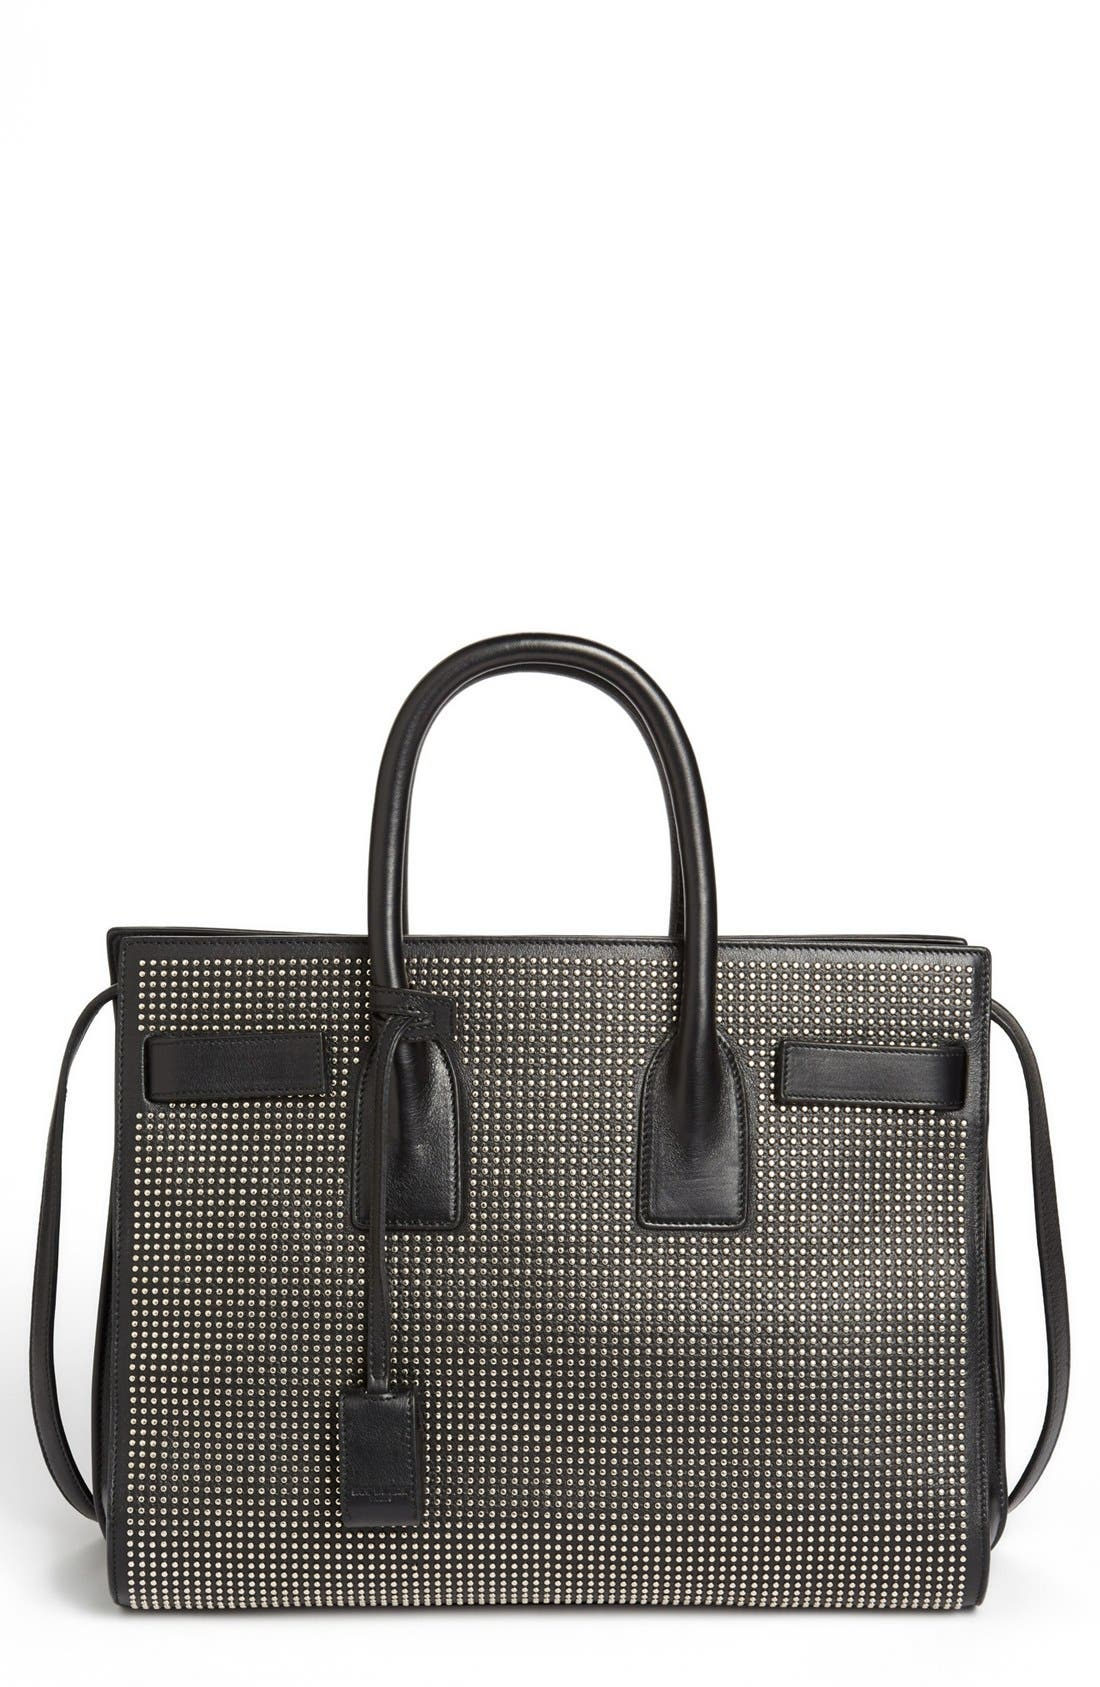 Alternate Image 1 Selected - Saint Laurent 'Small Sac de Jour Studs' Leather Tote